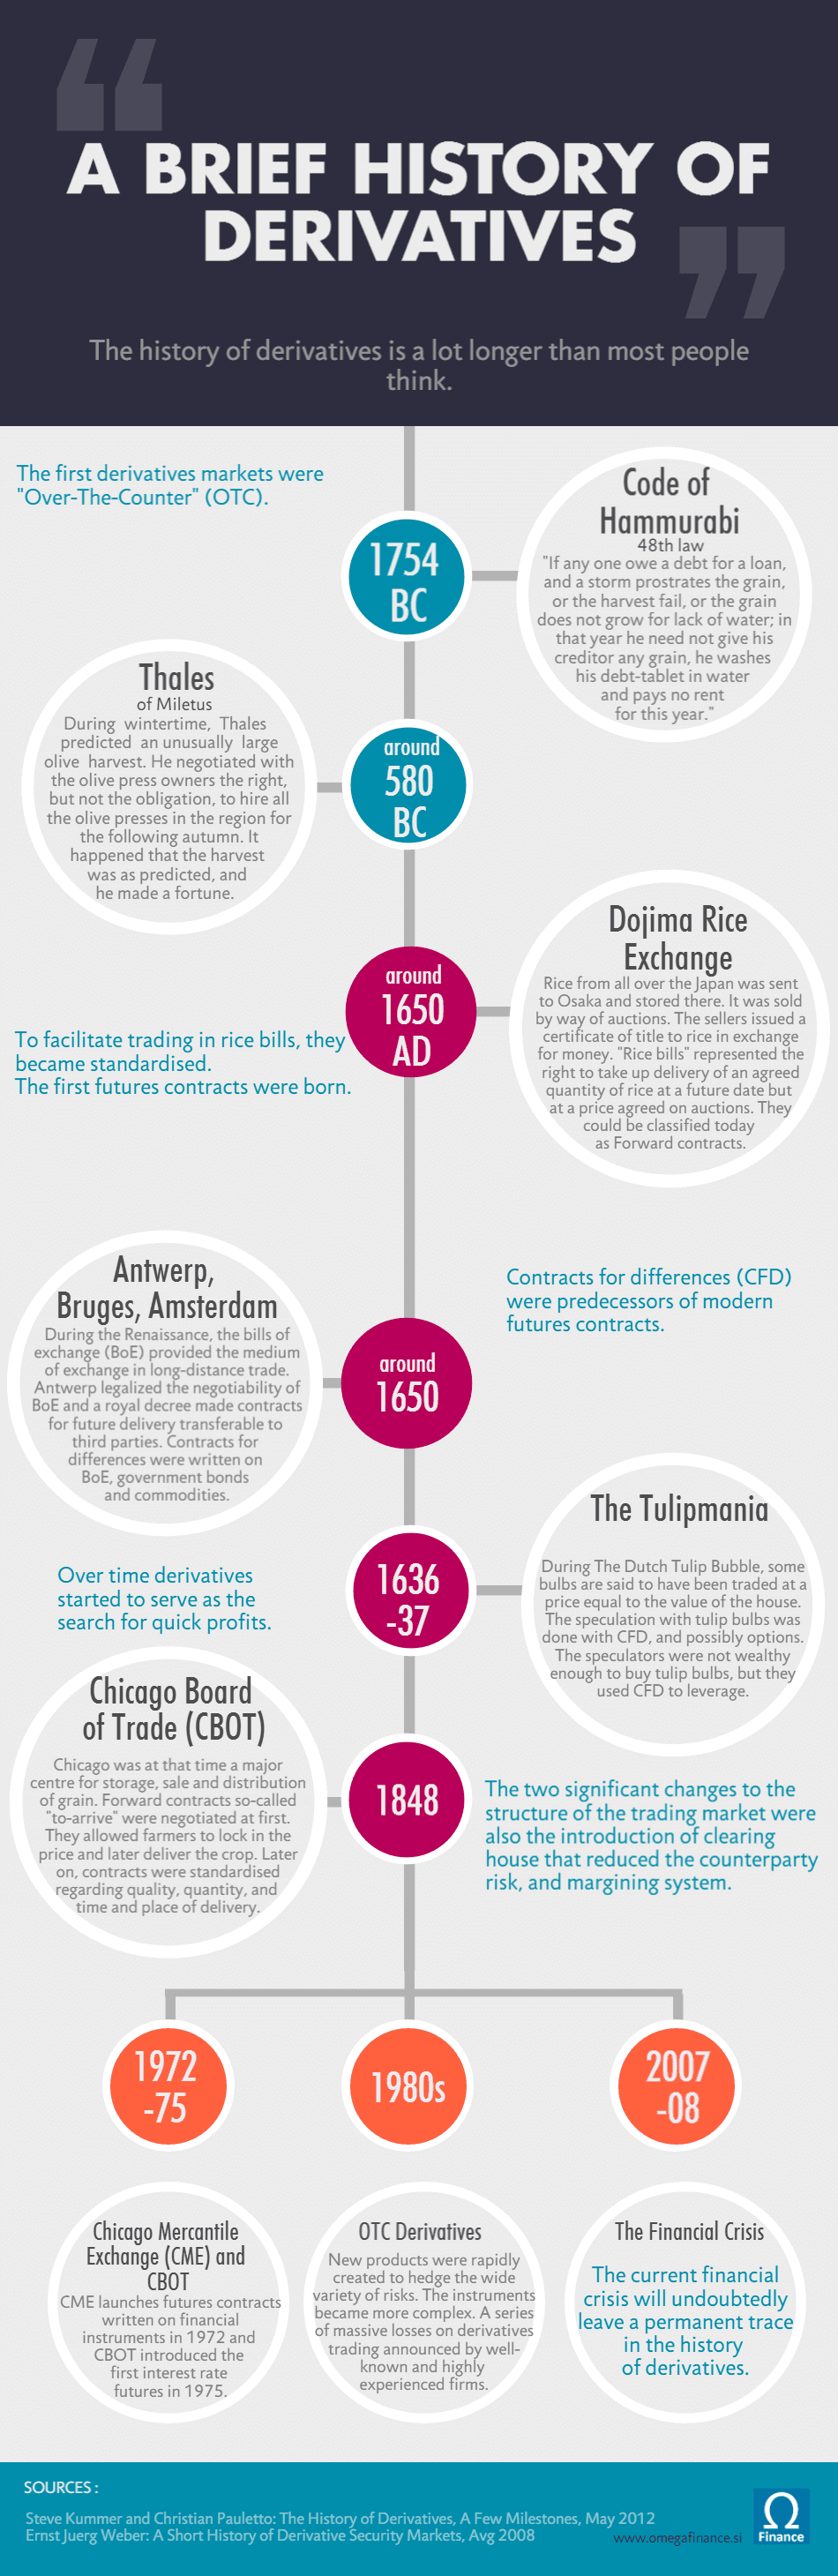 A brief history of derivatives